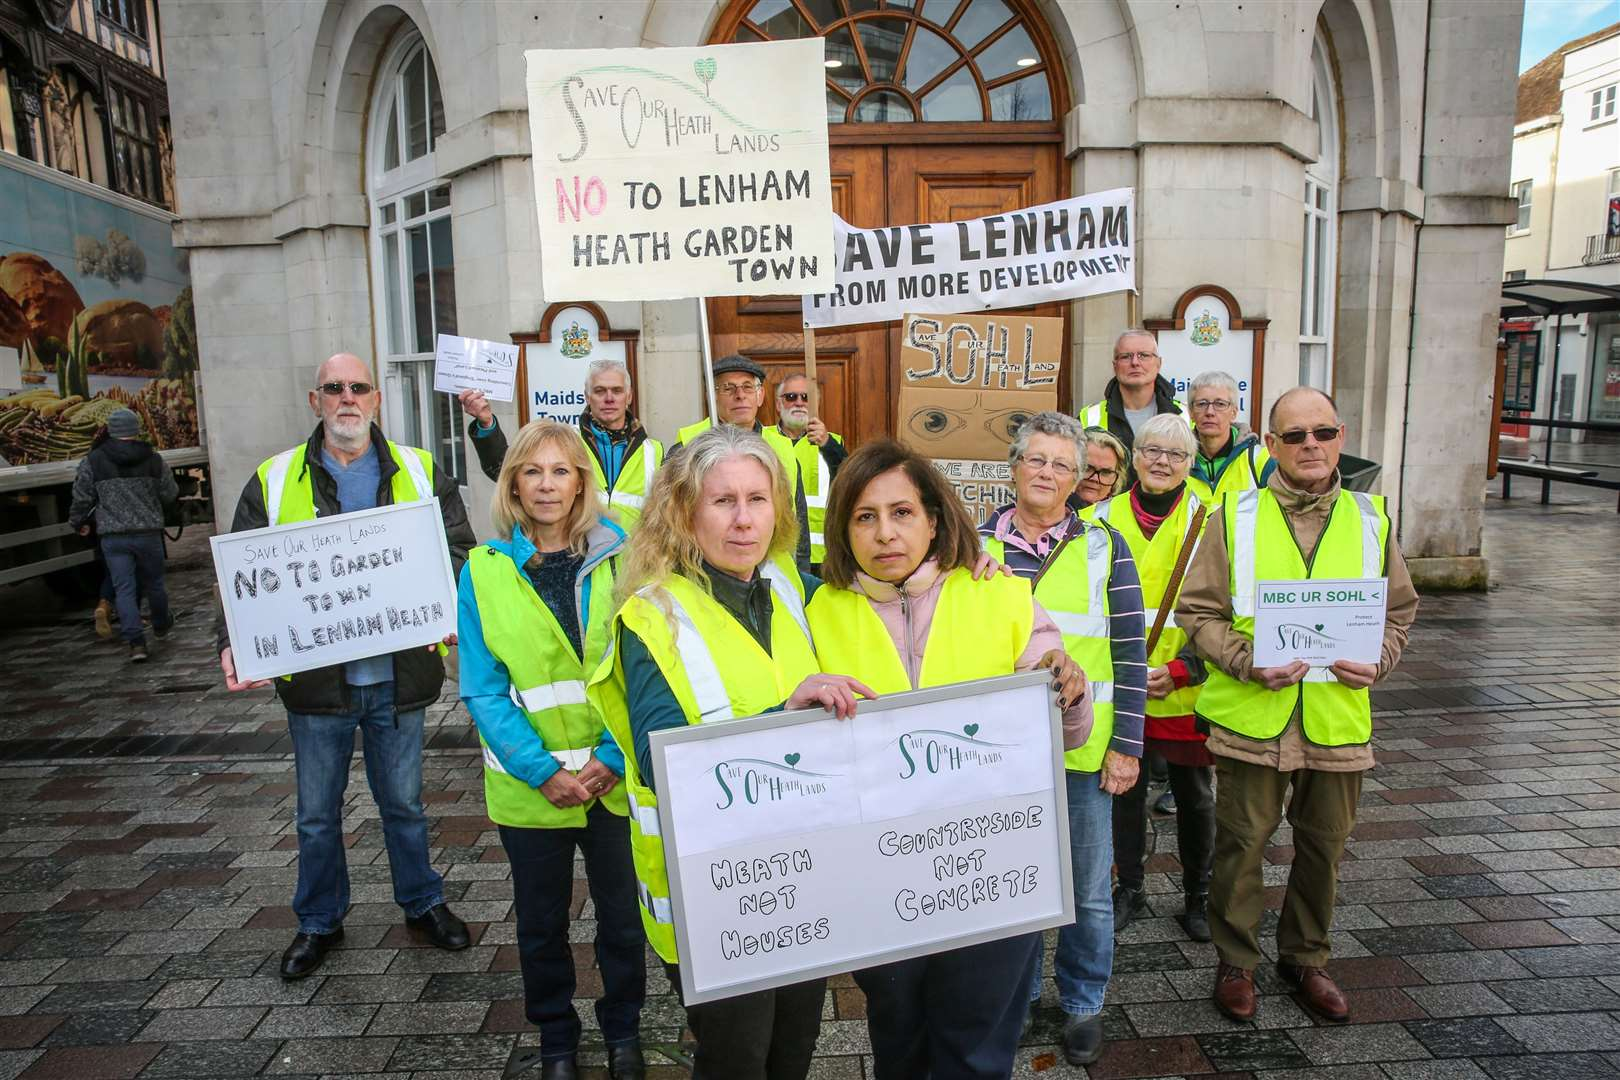 Campaigners protest against plans for a garden community in Lenham. Picture: Matthew Walker